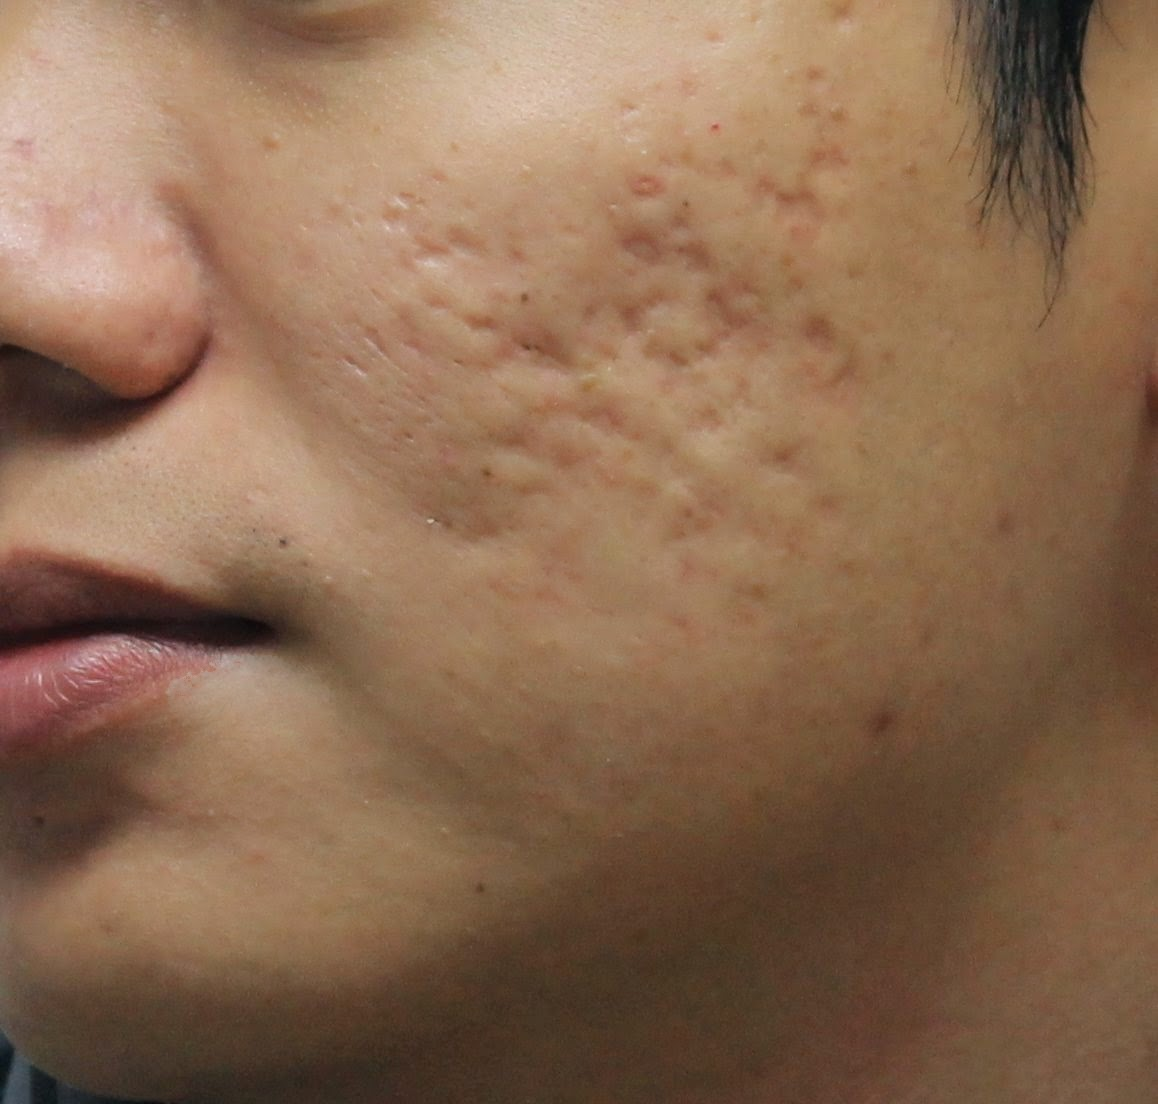 Home remedies for facial scars recommend